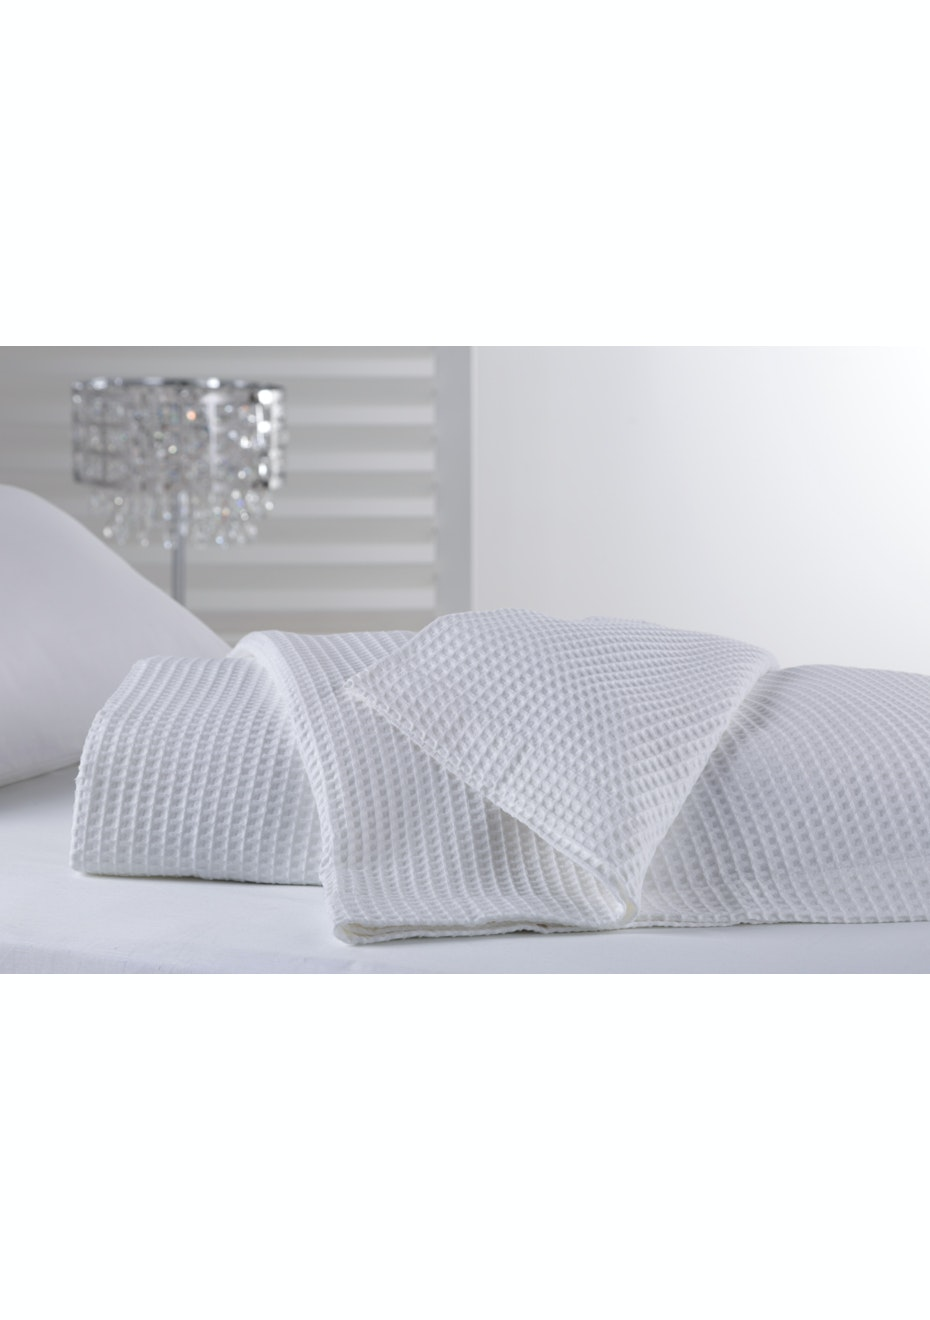 Regatta Cotton Blanket - White - Single/King Single /Double